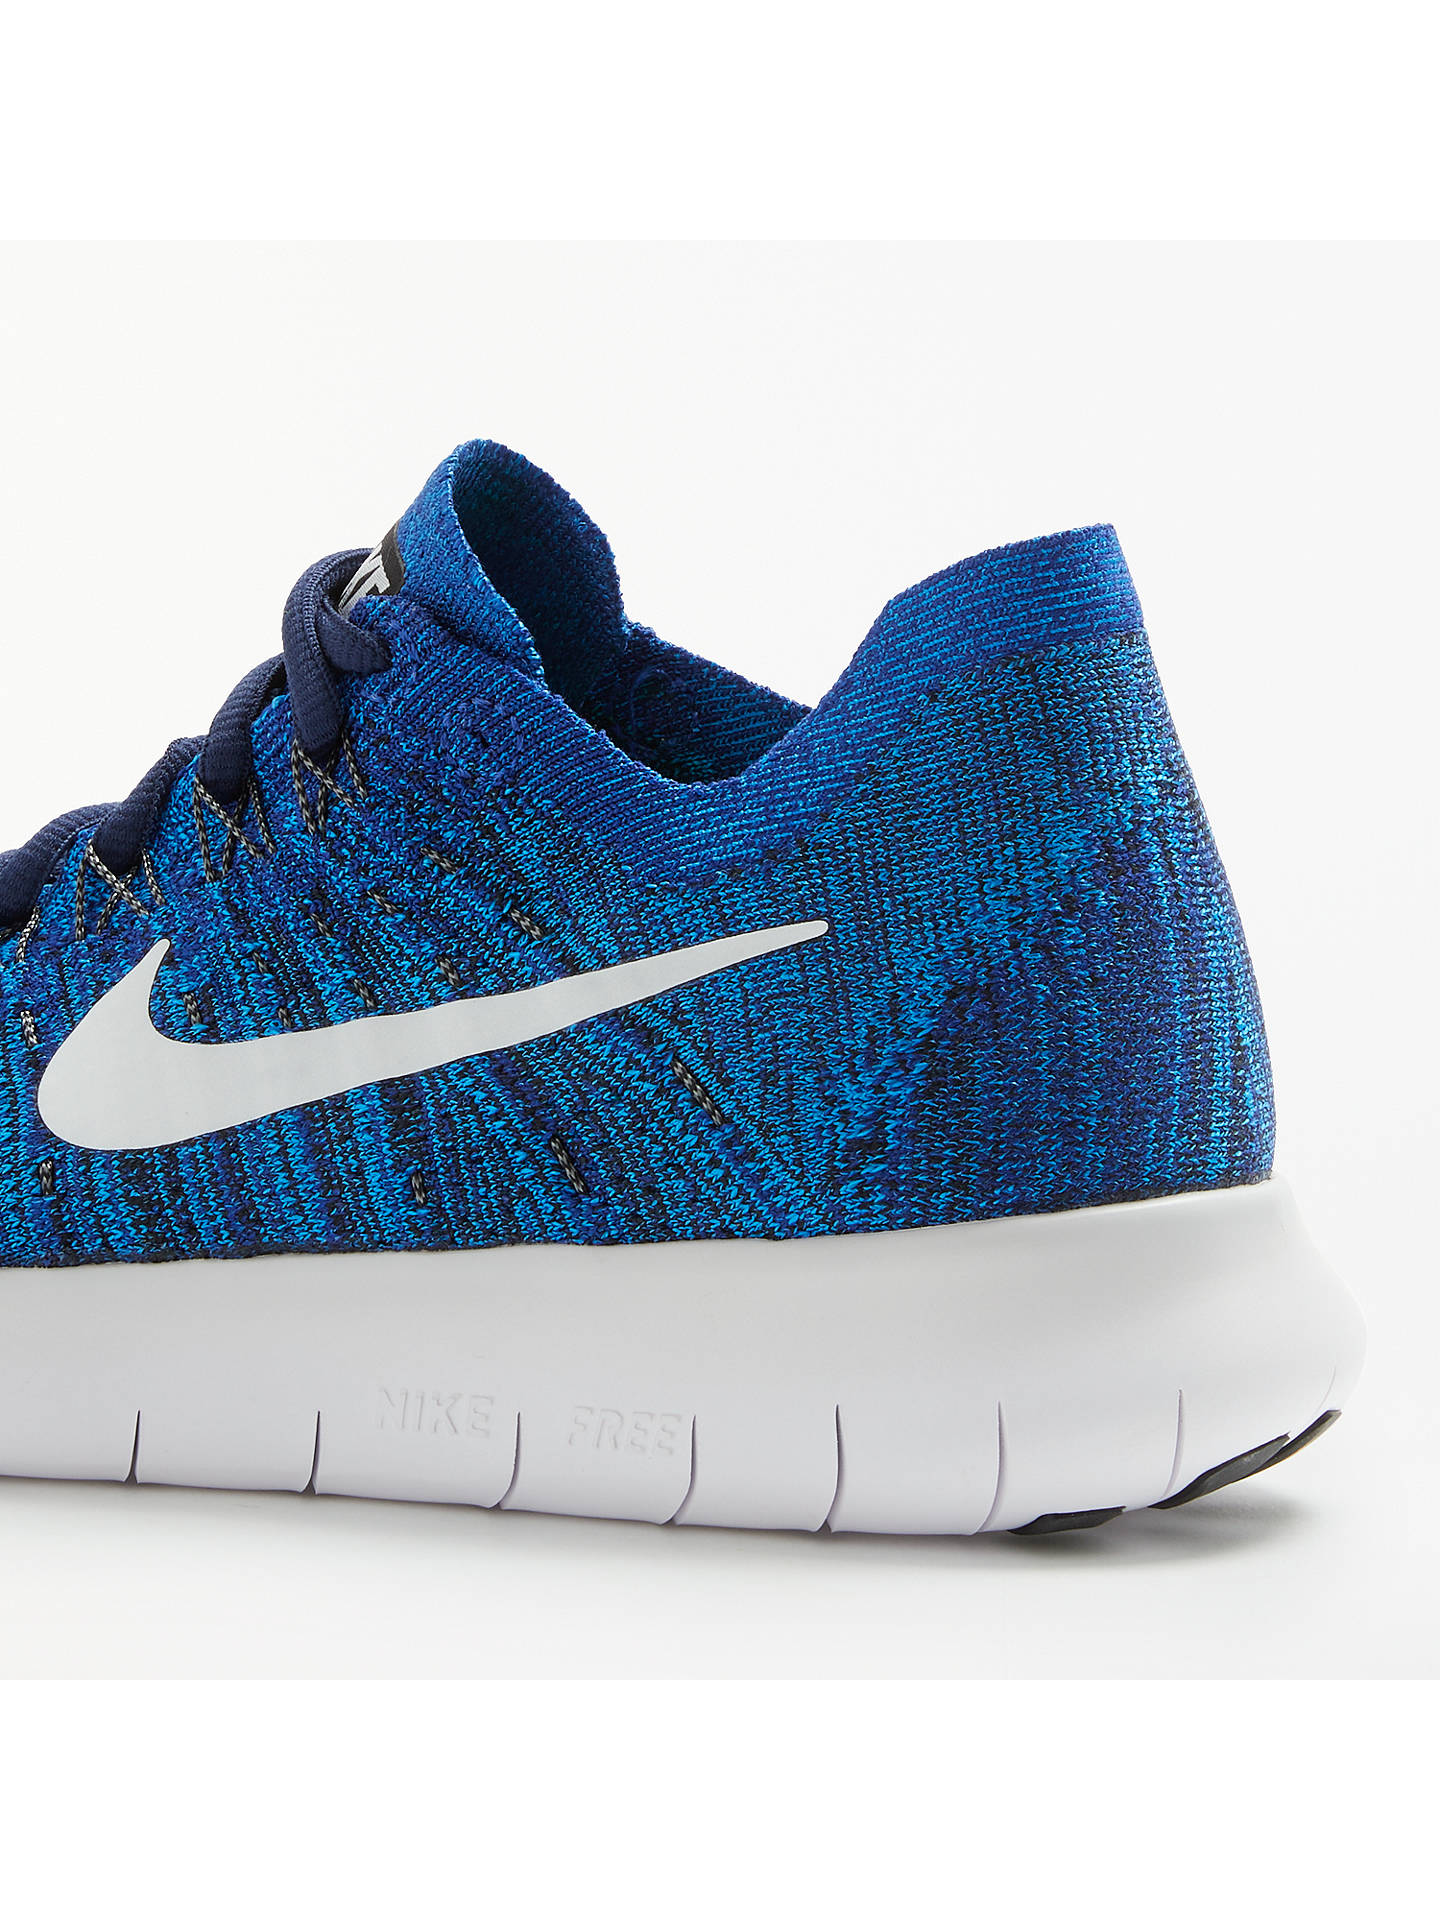 d9142f29b6a Nike Free RN Flyknit 2017 Men s Running Shoes at John Lewis   Partners